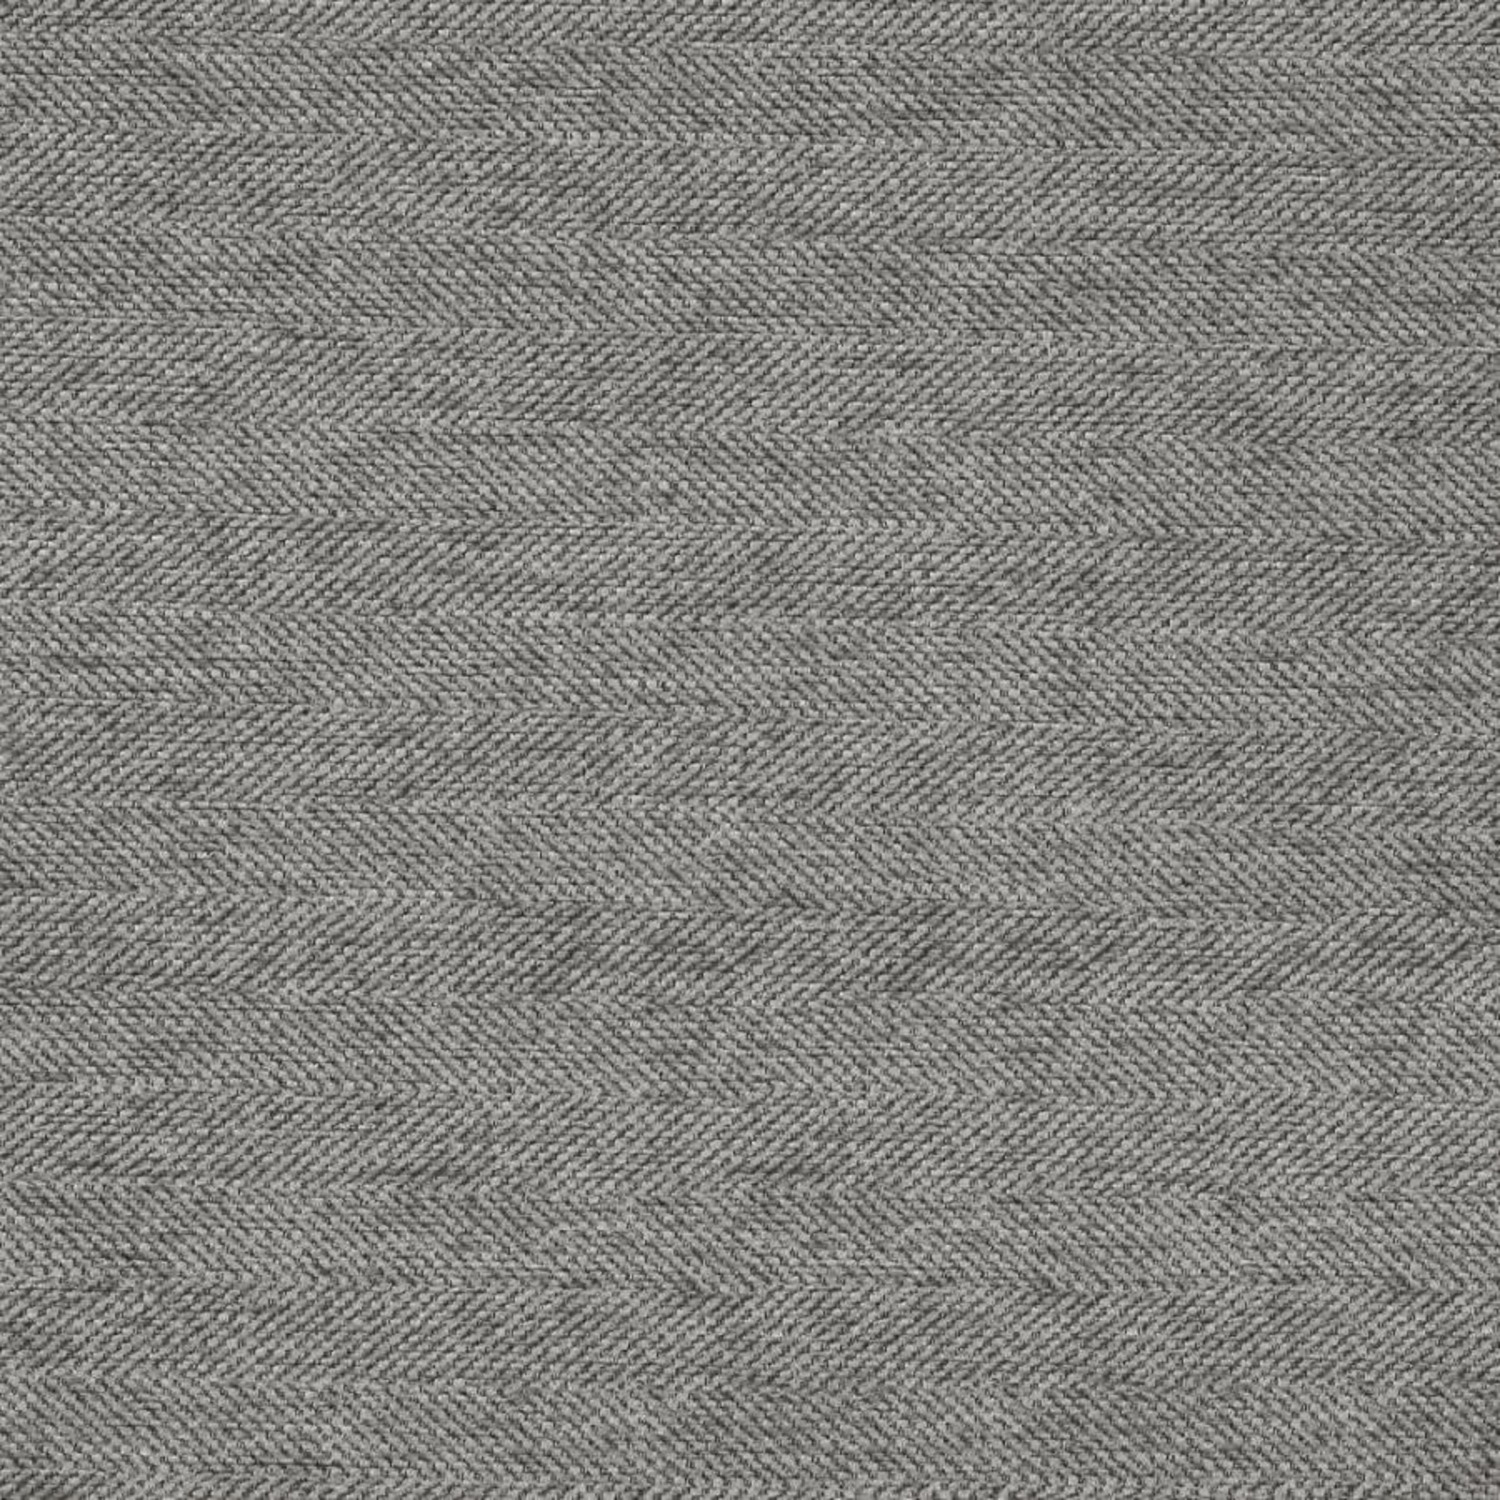 Sectional In Charcoal Chevron Dobby Upholstery - image-11